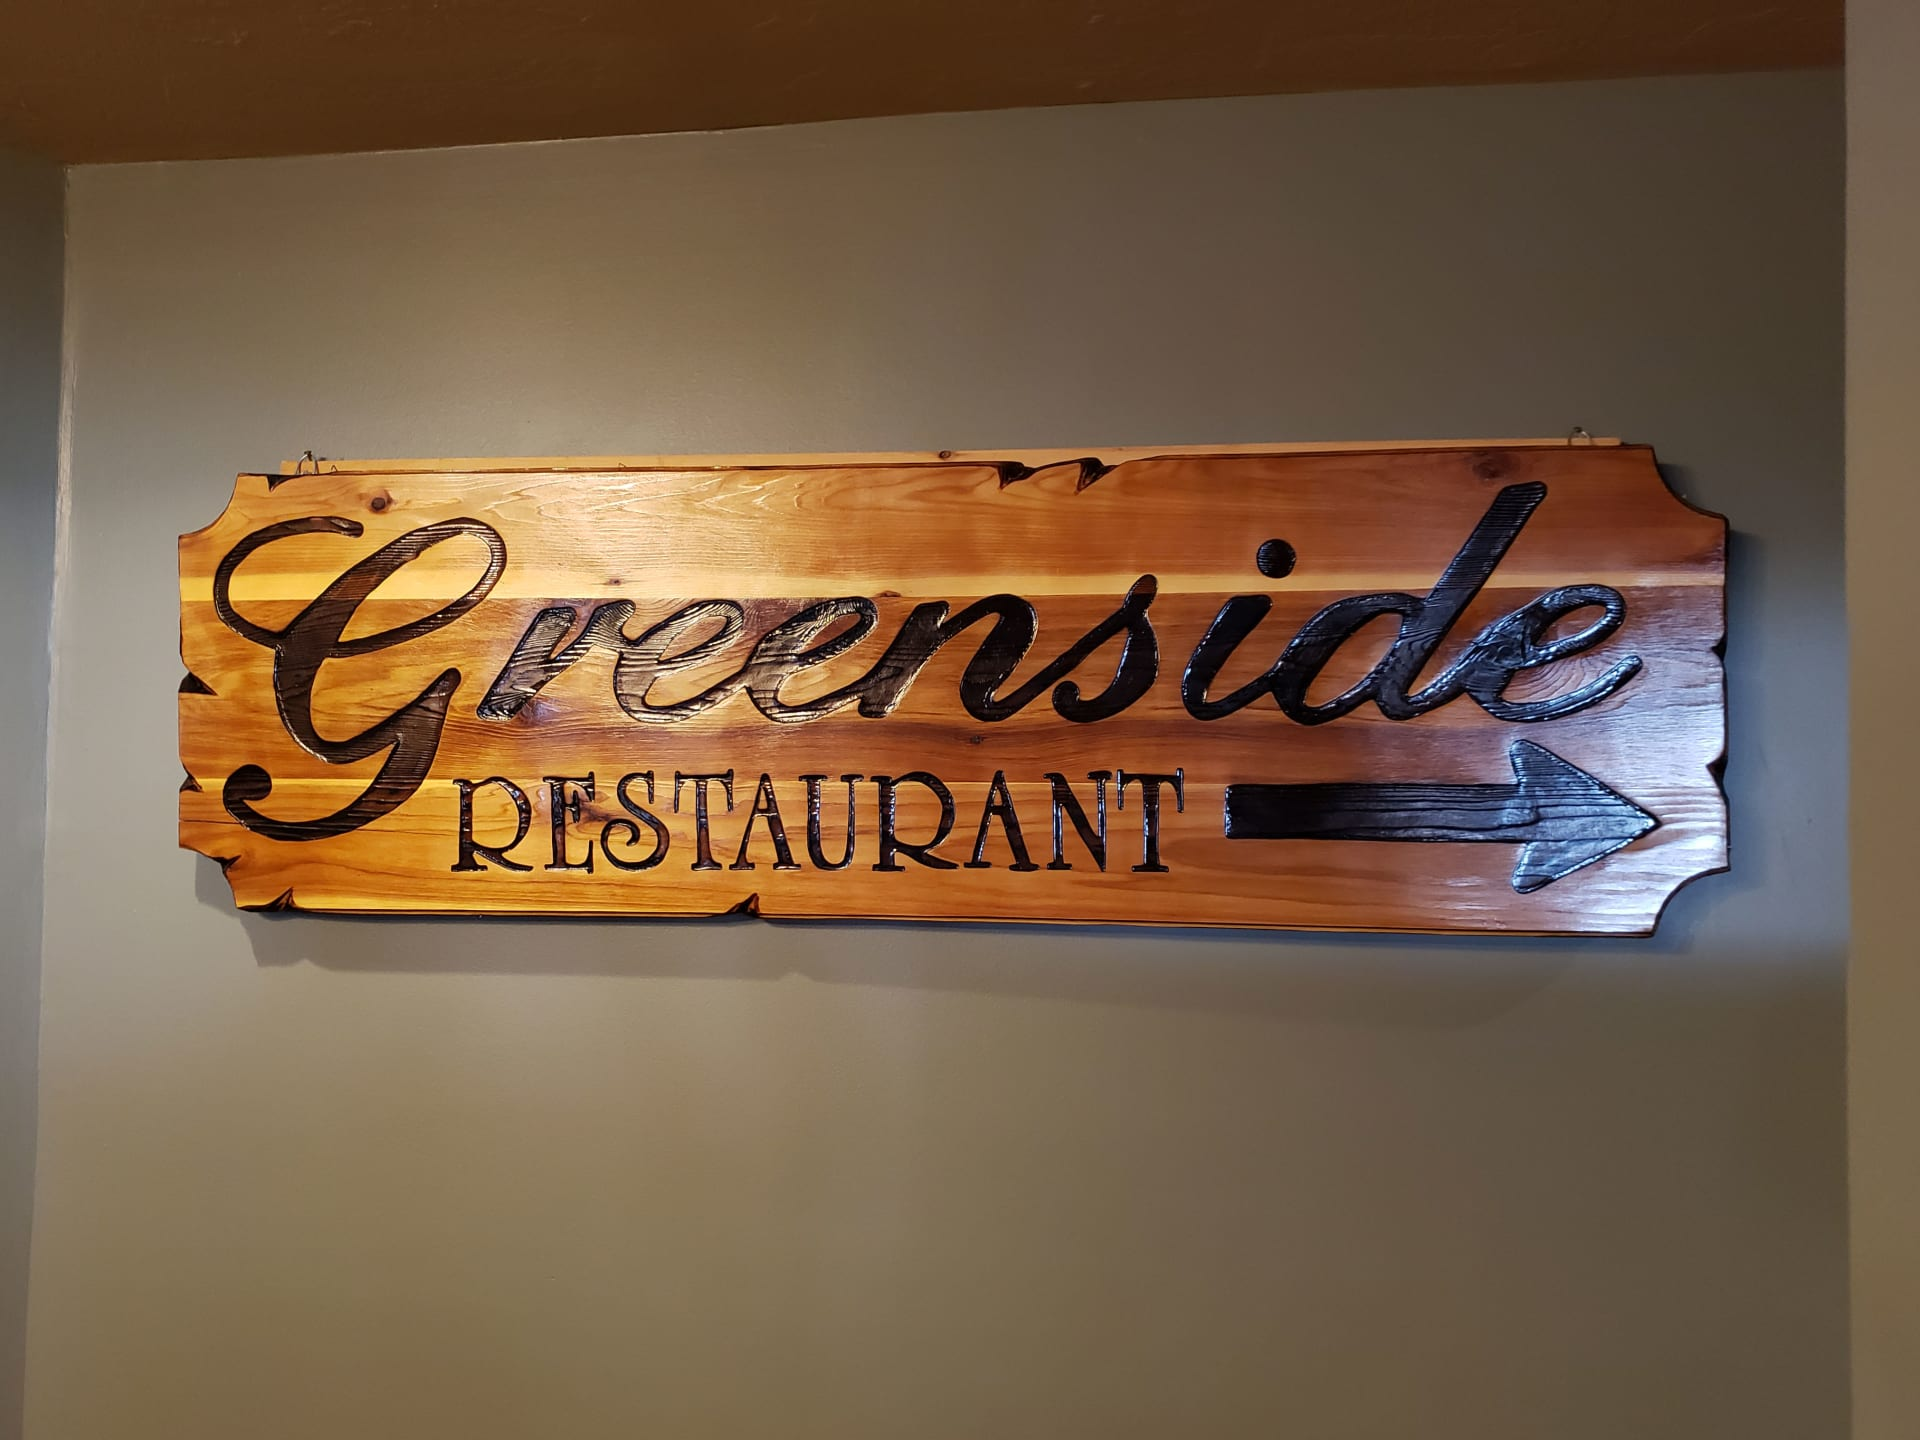 greenside restaurant sign